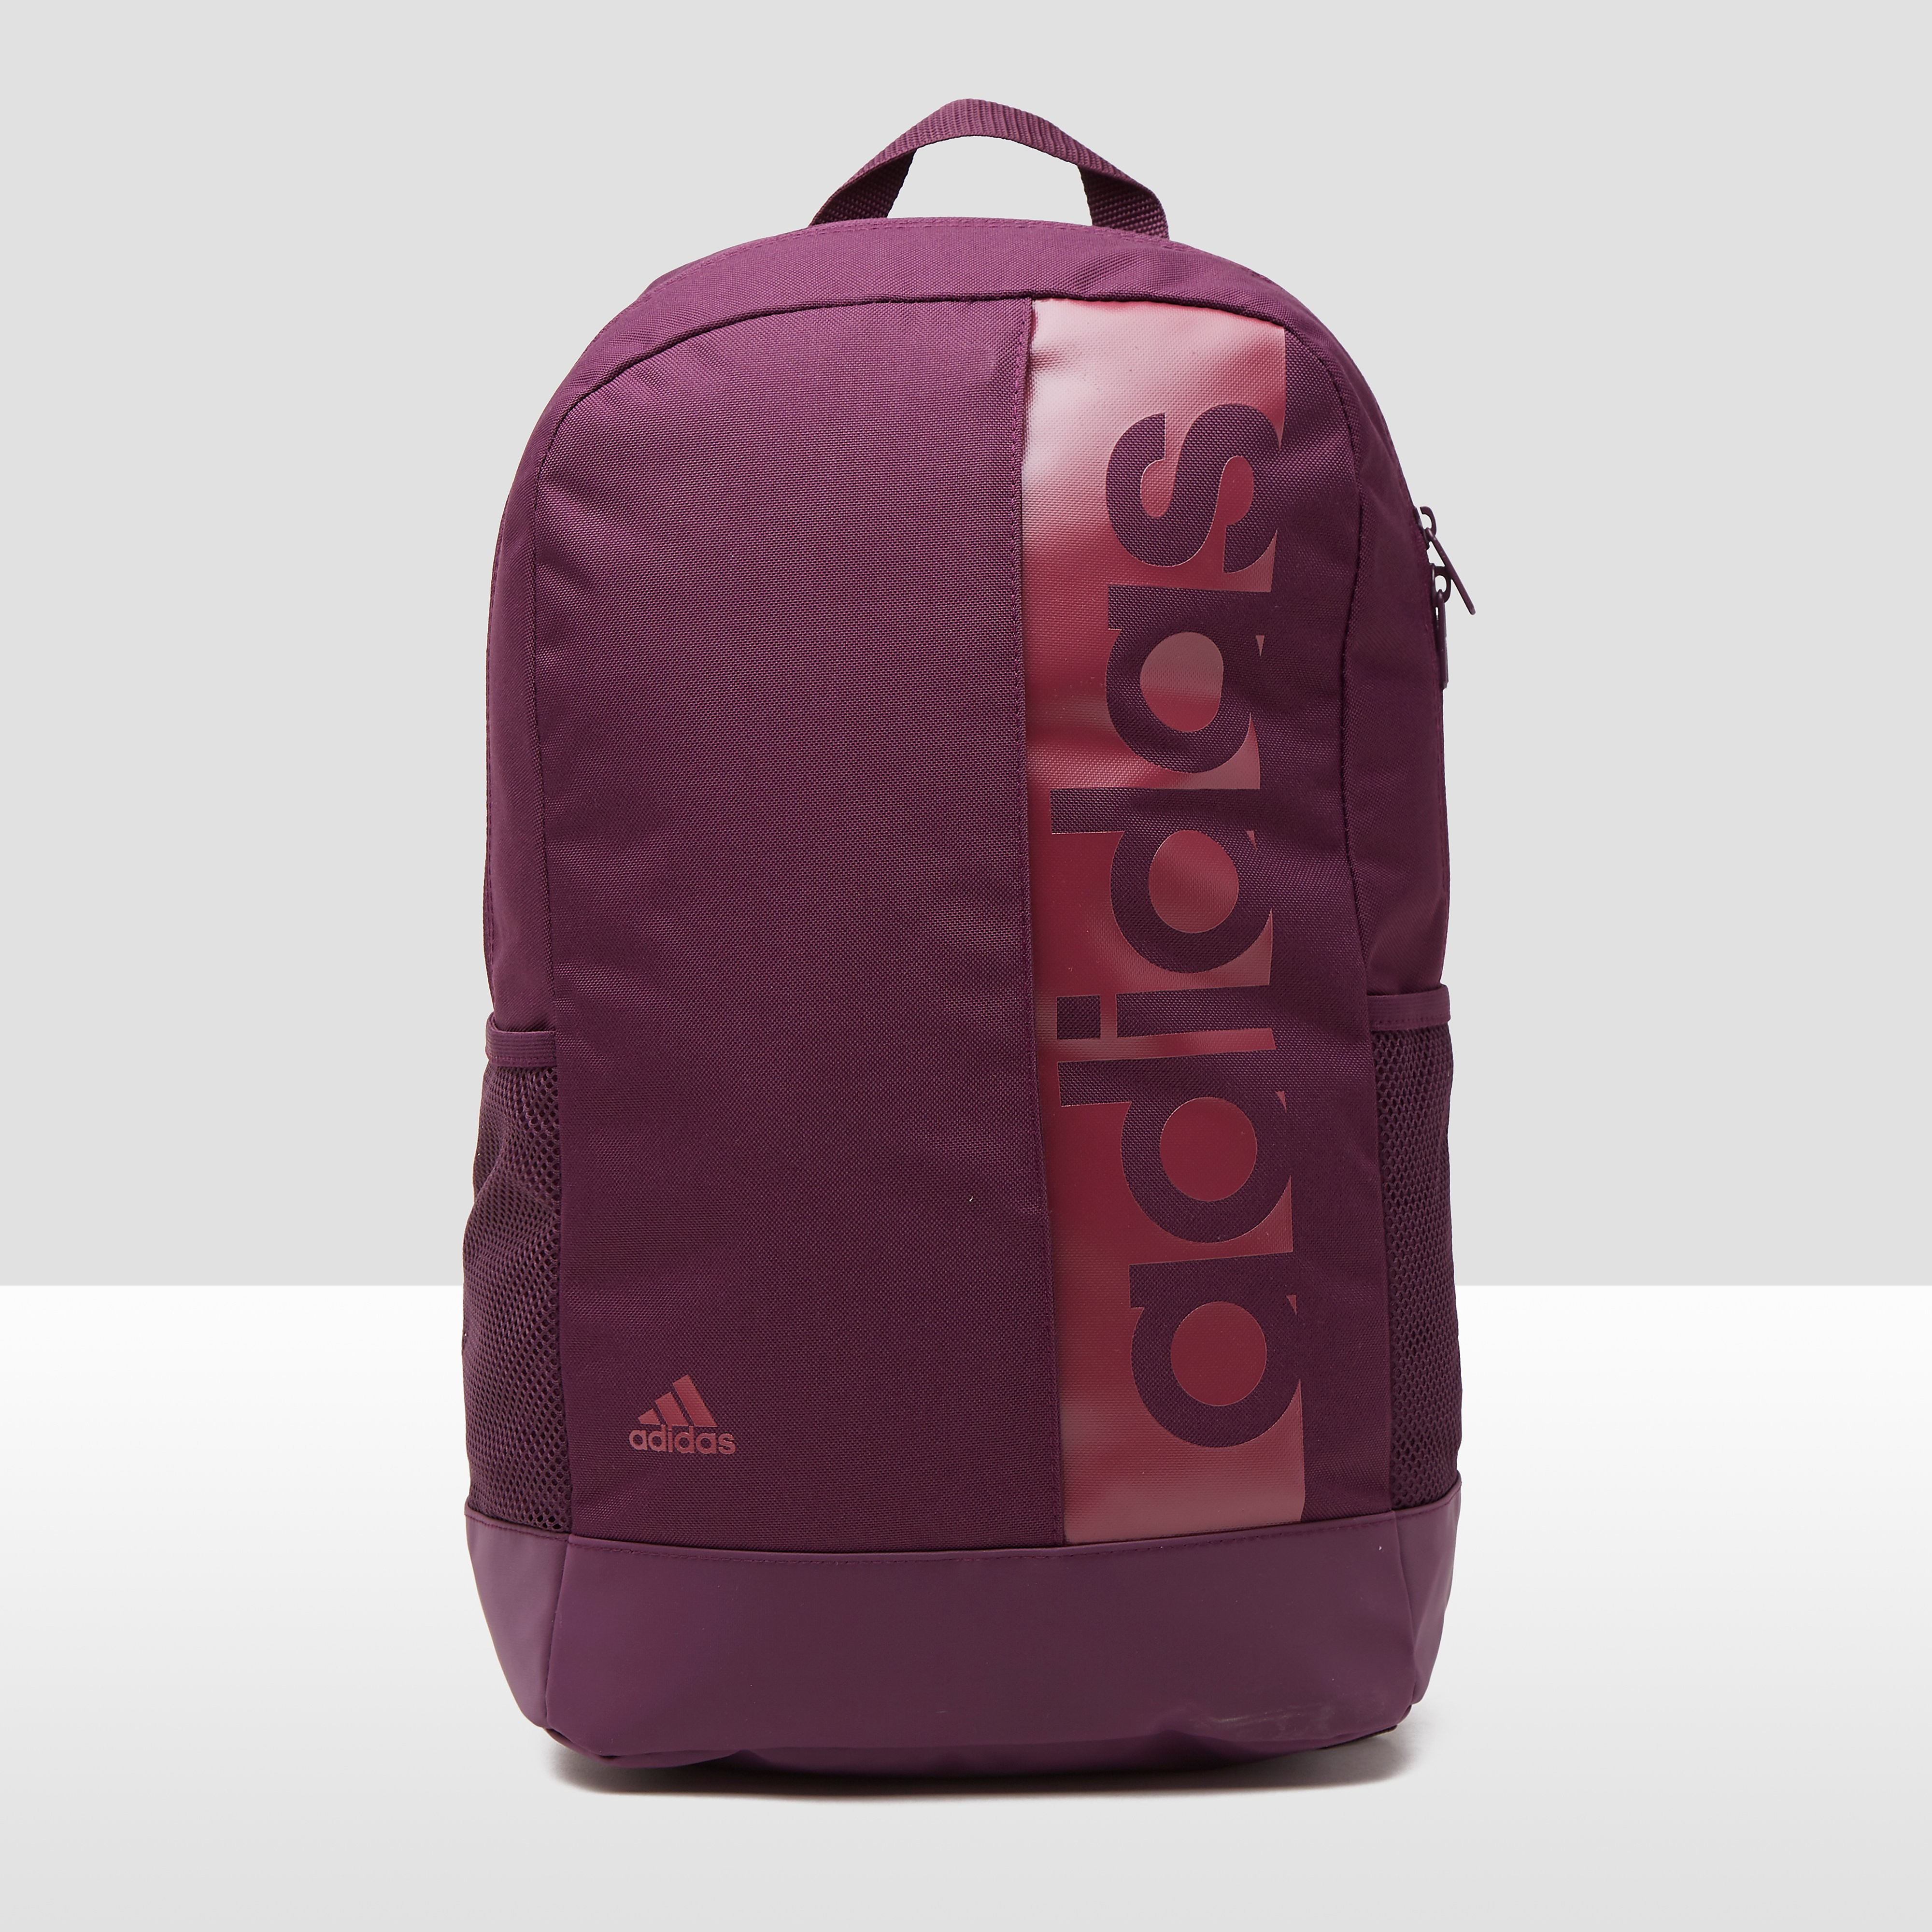 ADIDAS LINEAR PERFORMANCE RUGZAK BORDEAUX ROOD